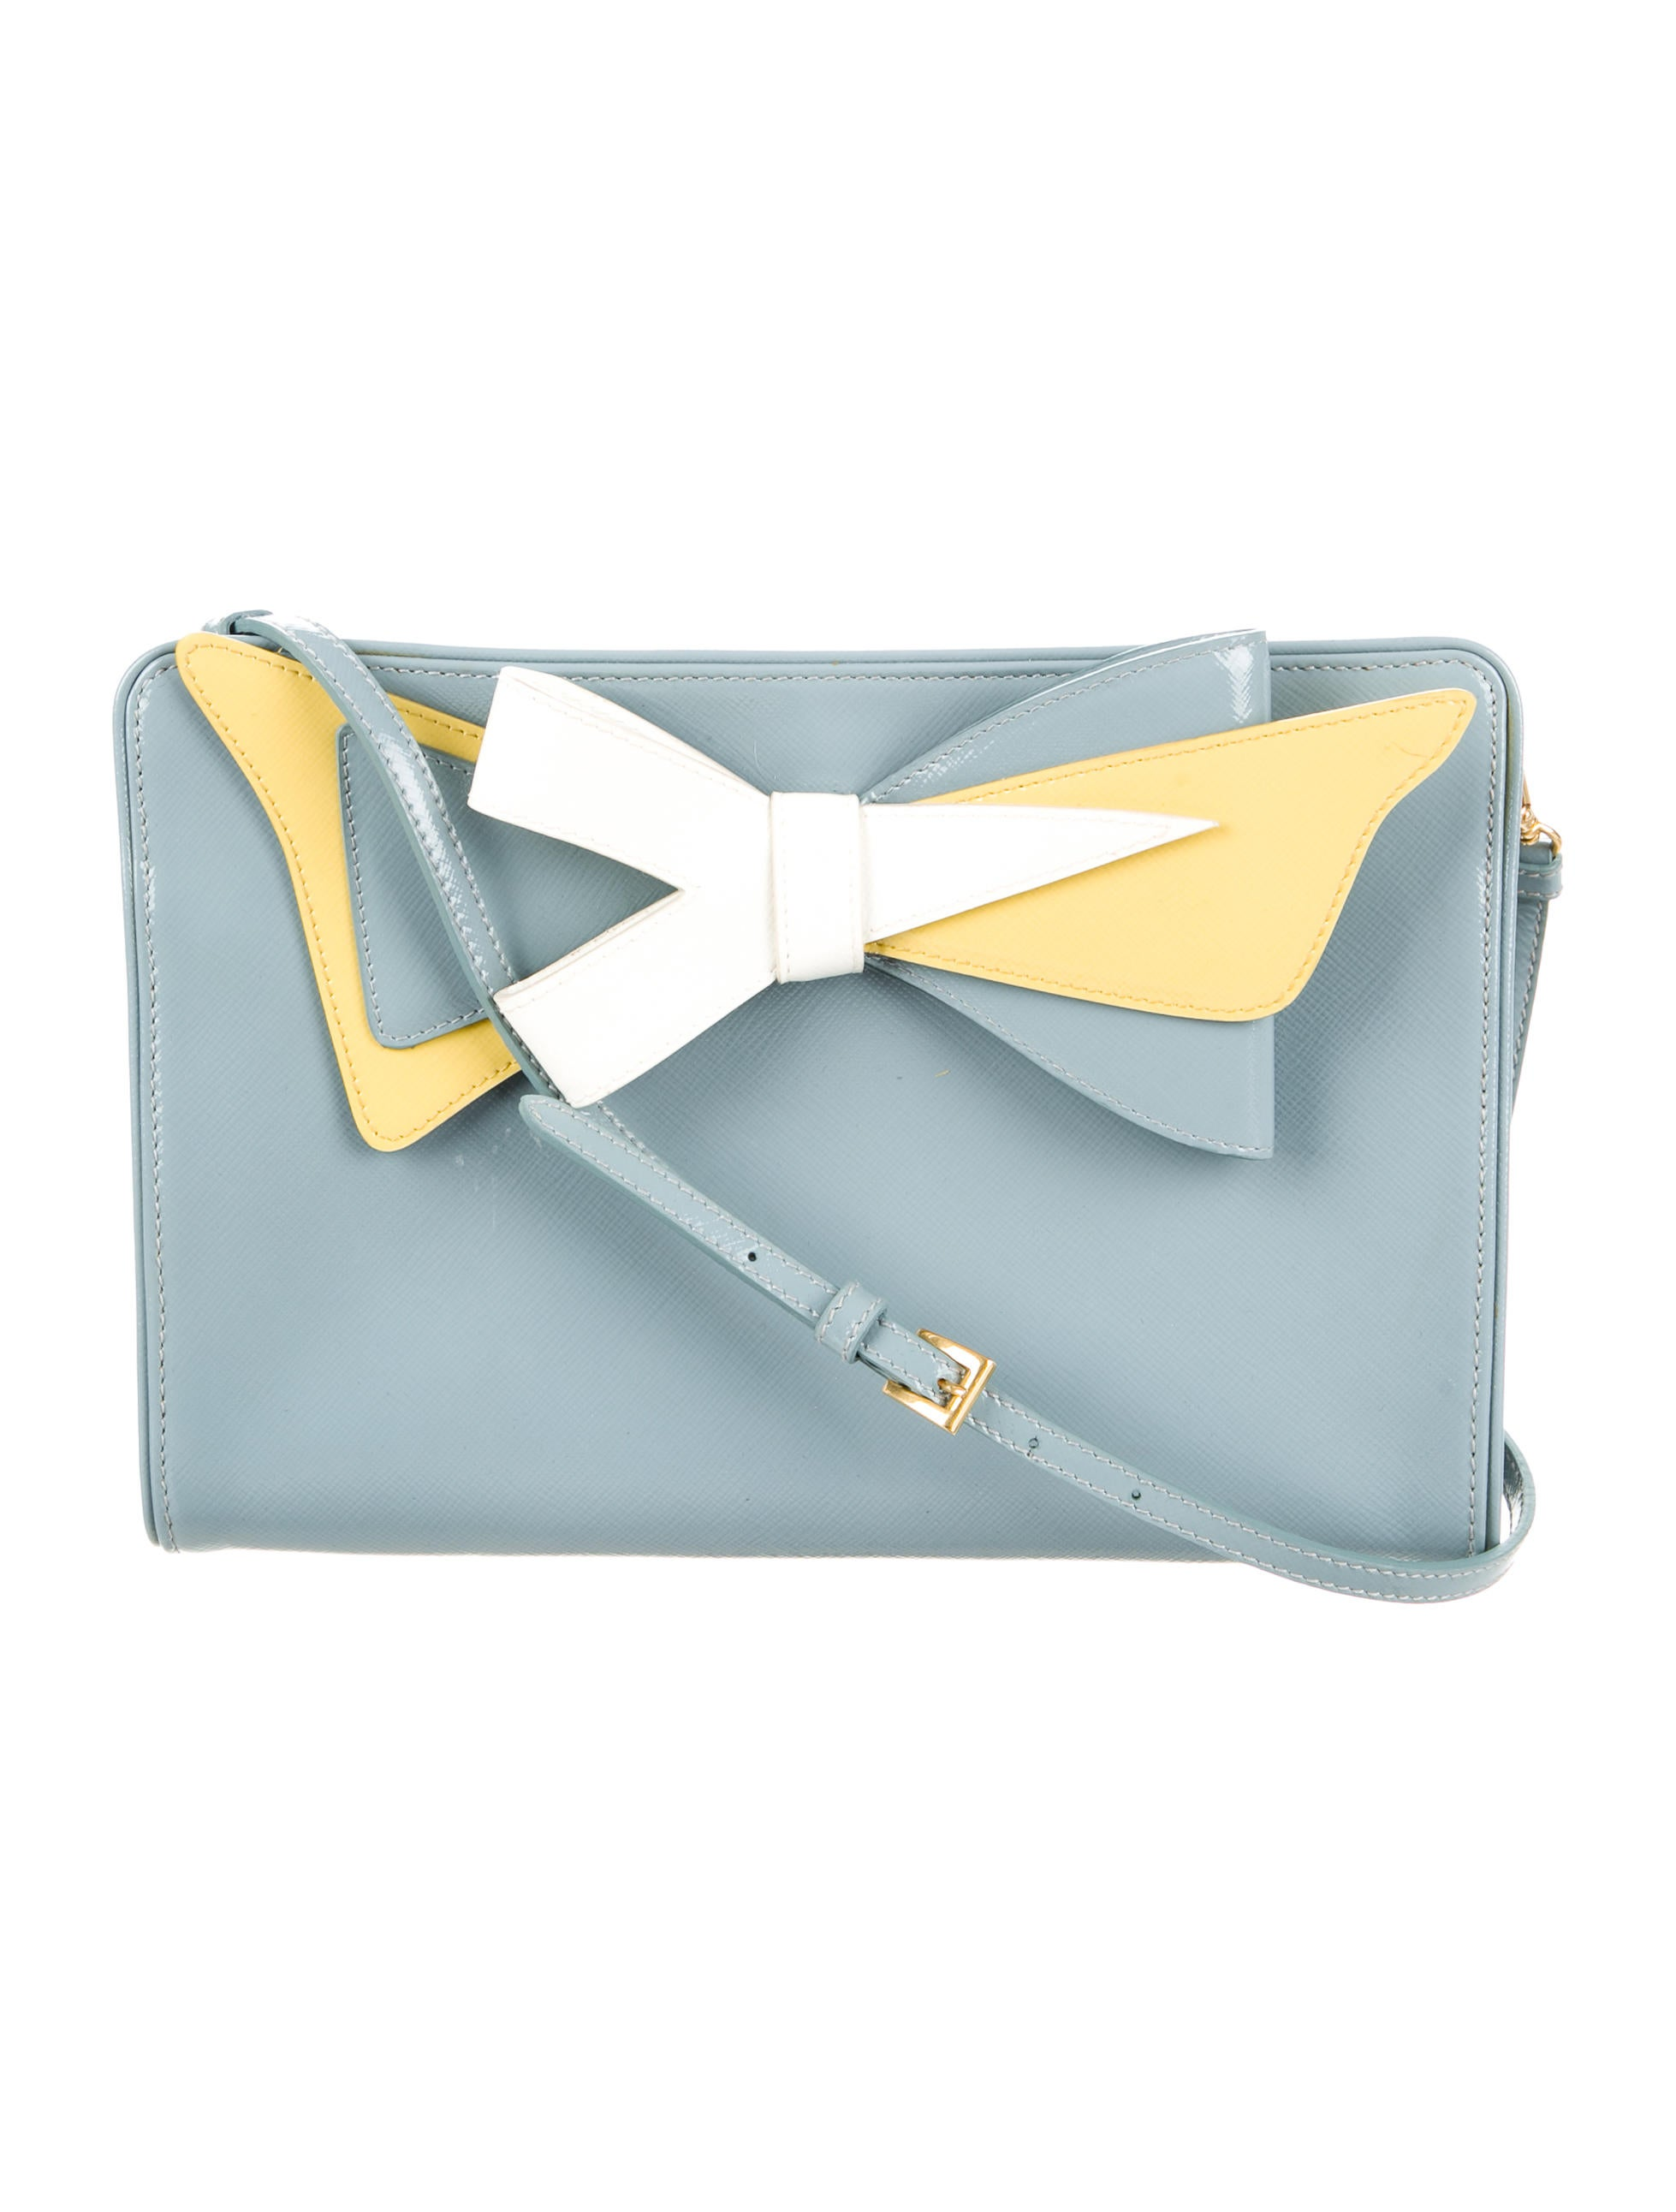 7749106bb5fb2d Prada Saffiano Purse Bow | Stanford Center for Opportunity Policy in ...